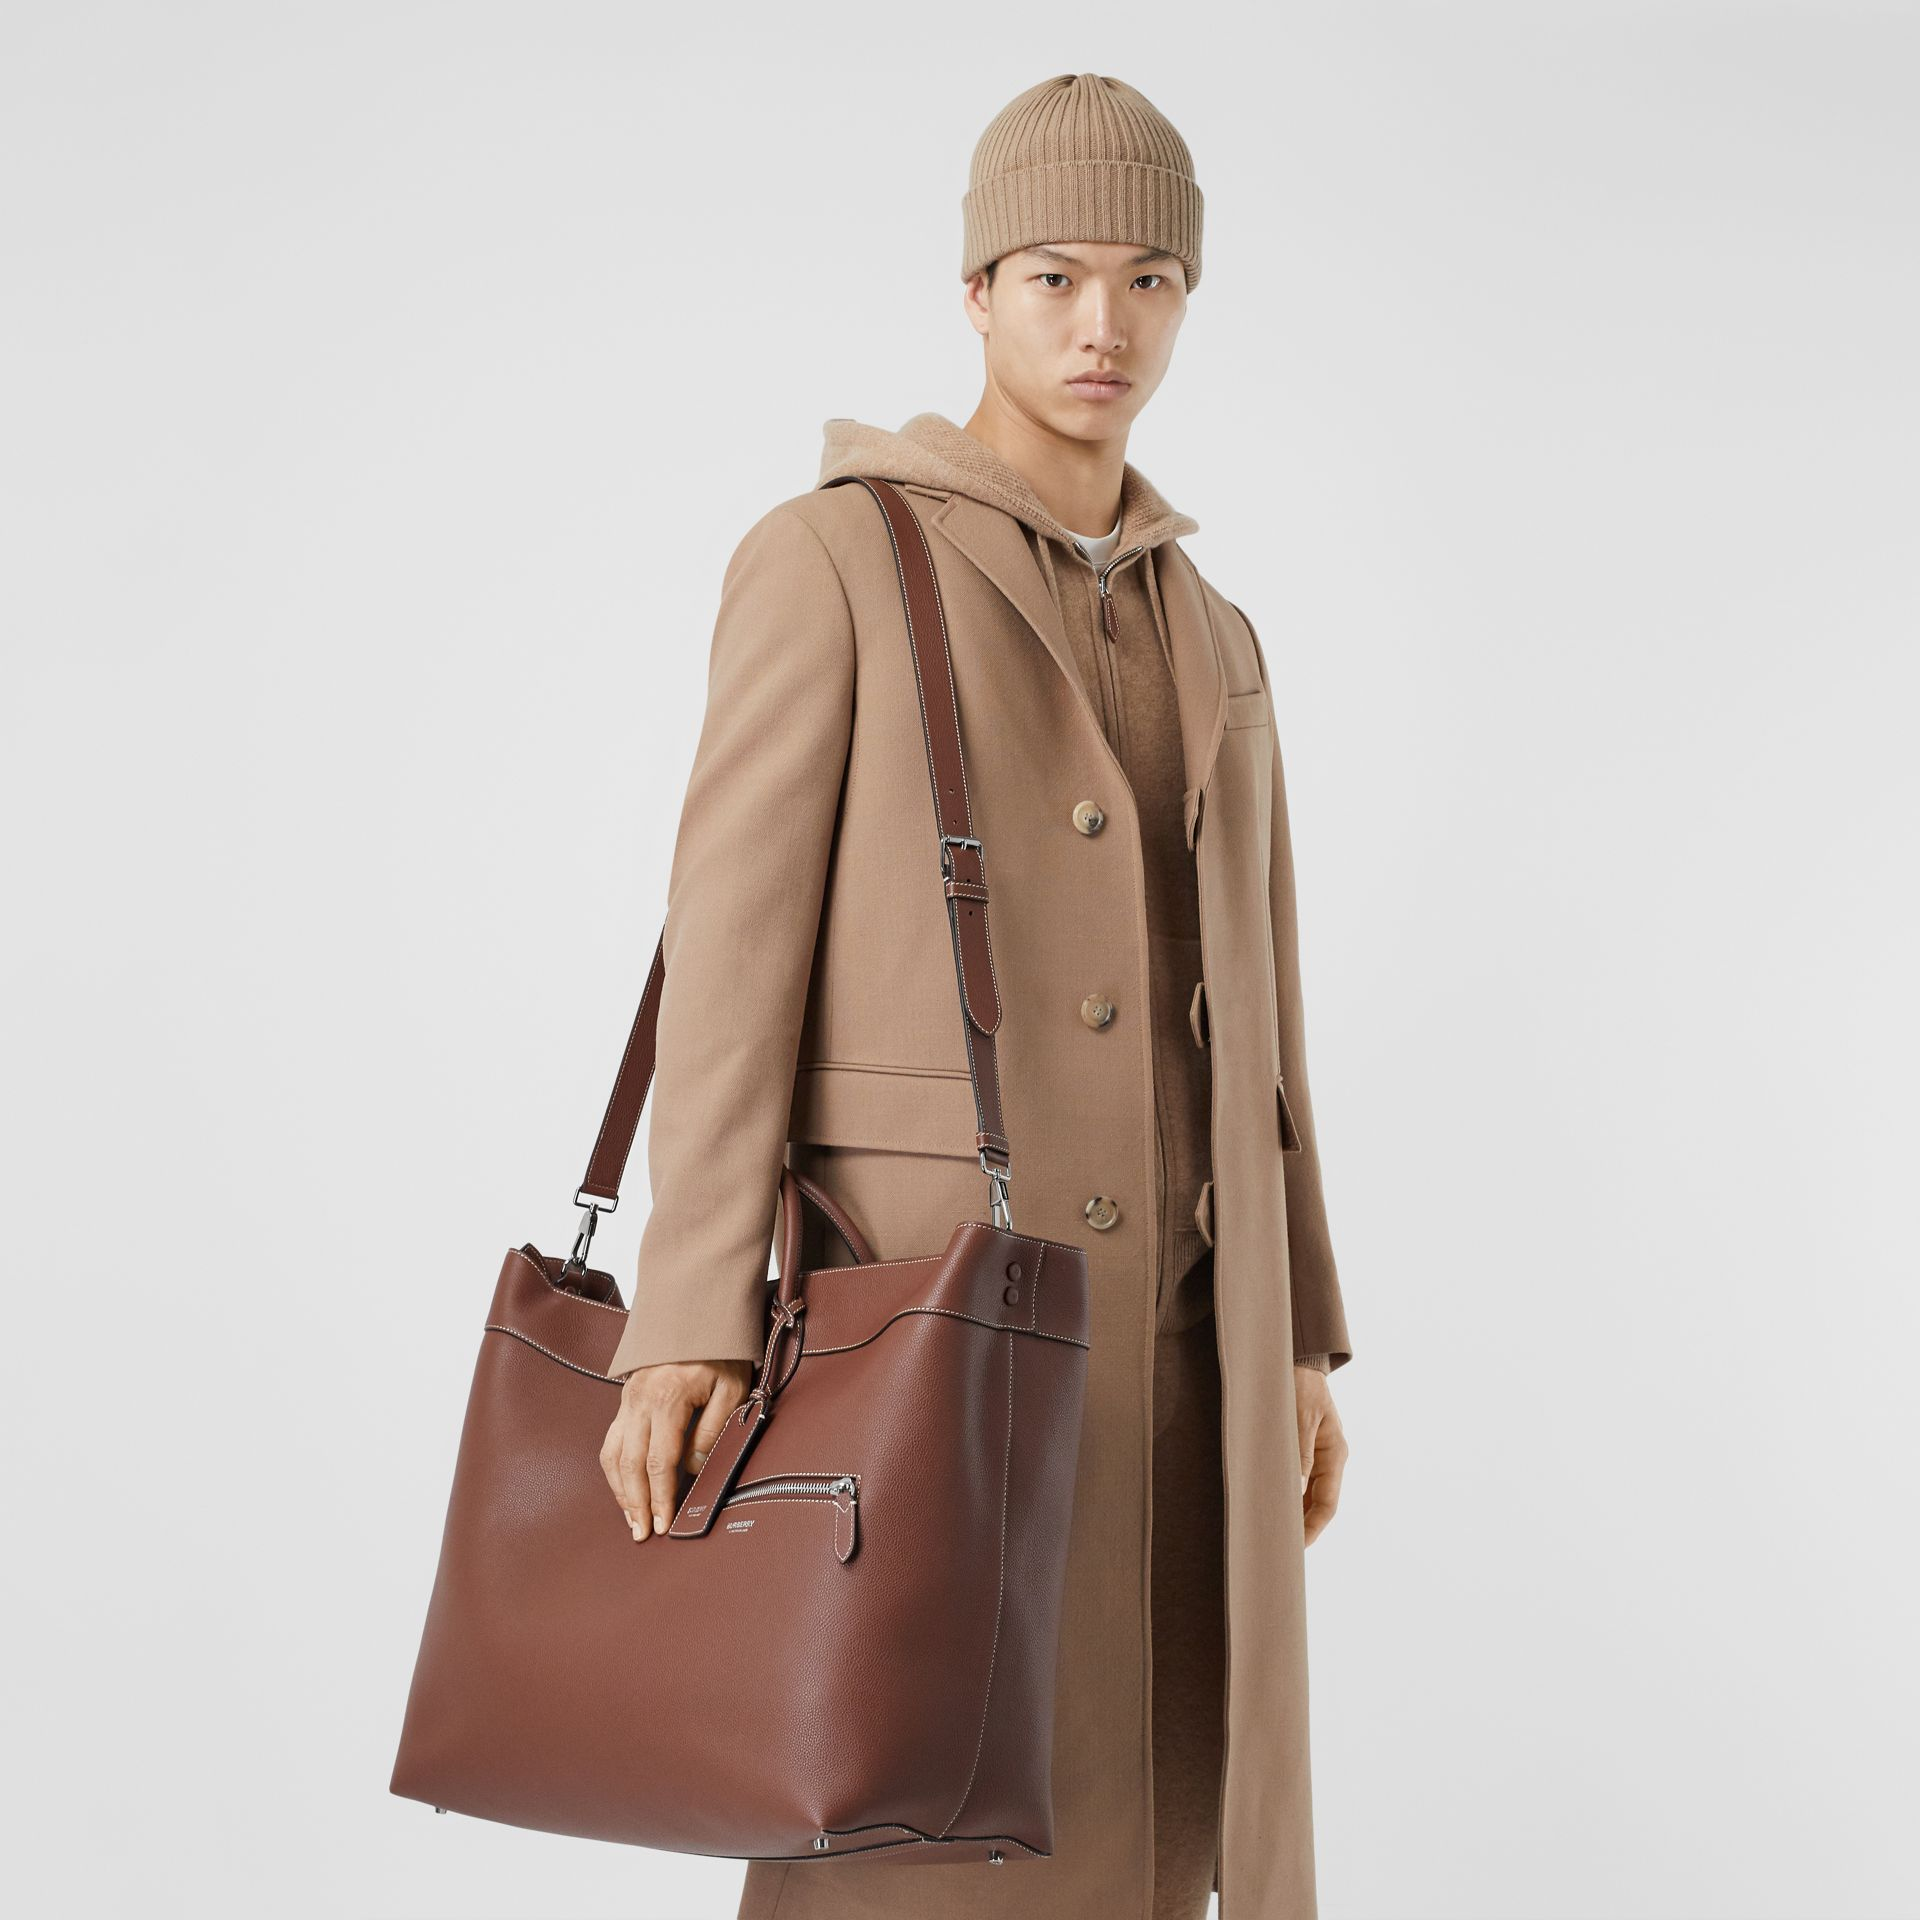 Grainy Leather Holdall in Tan - Men | Burberry Canada - gallery image 2